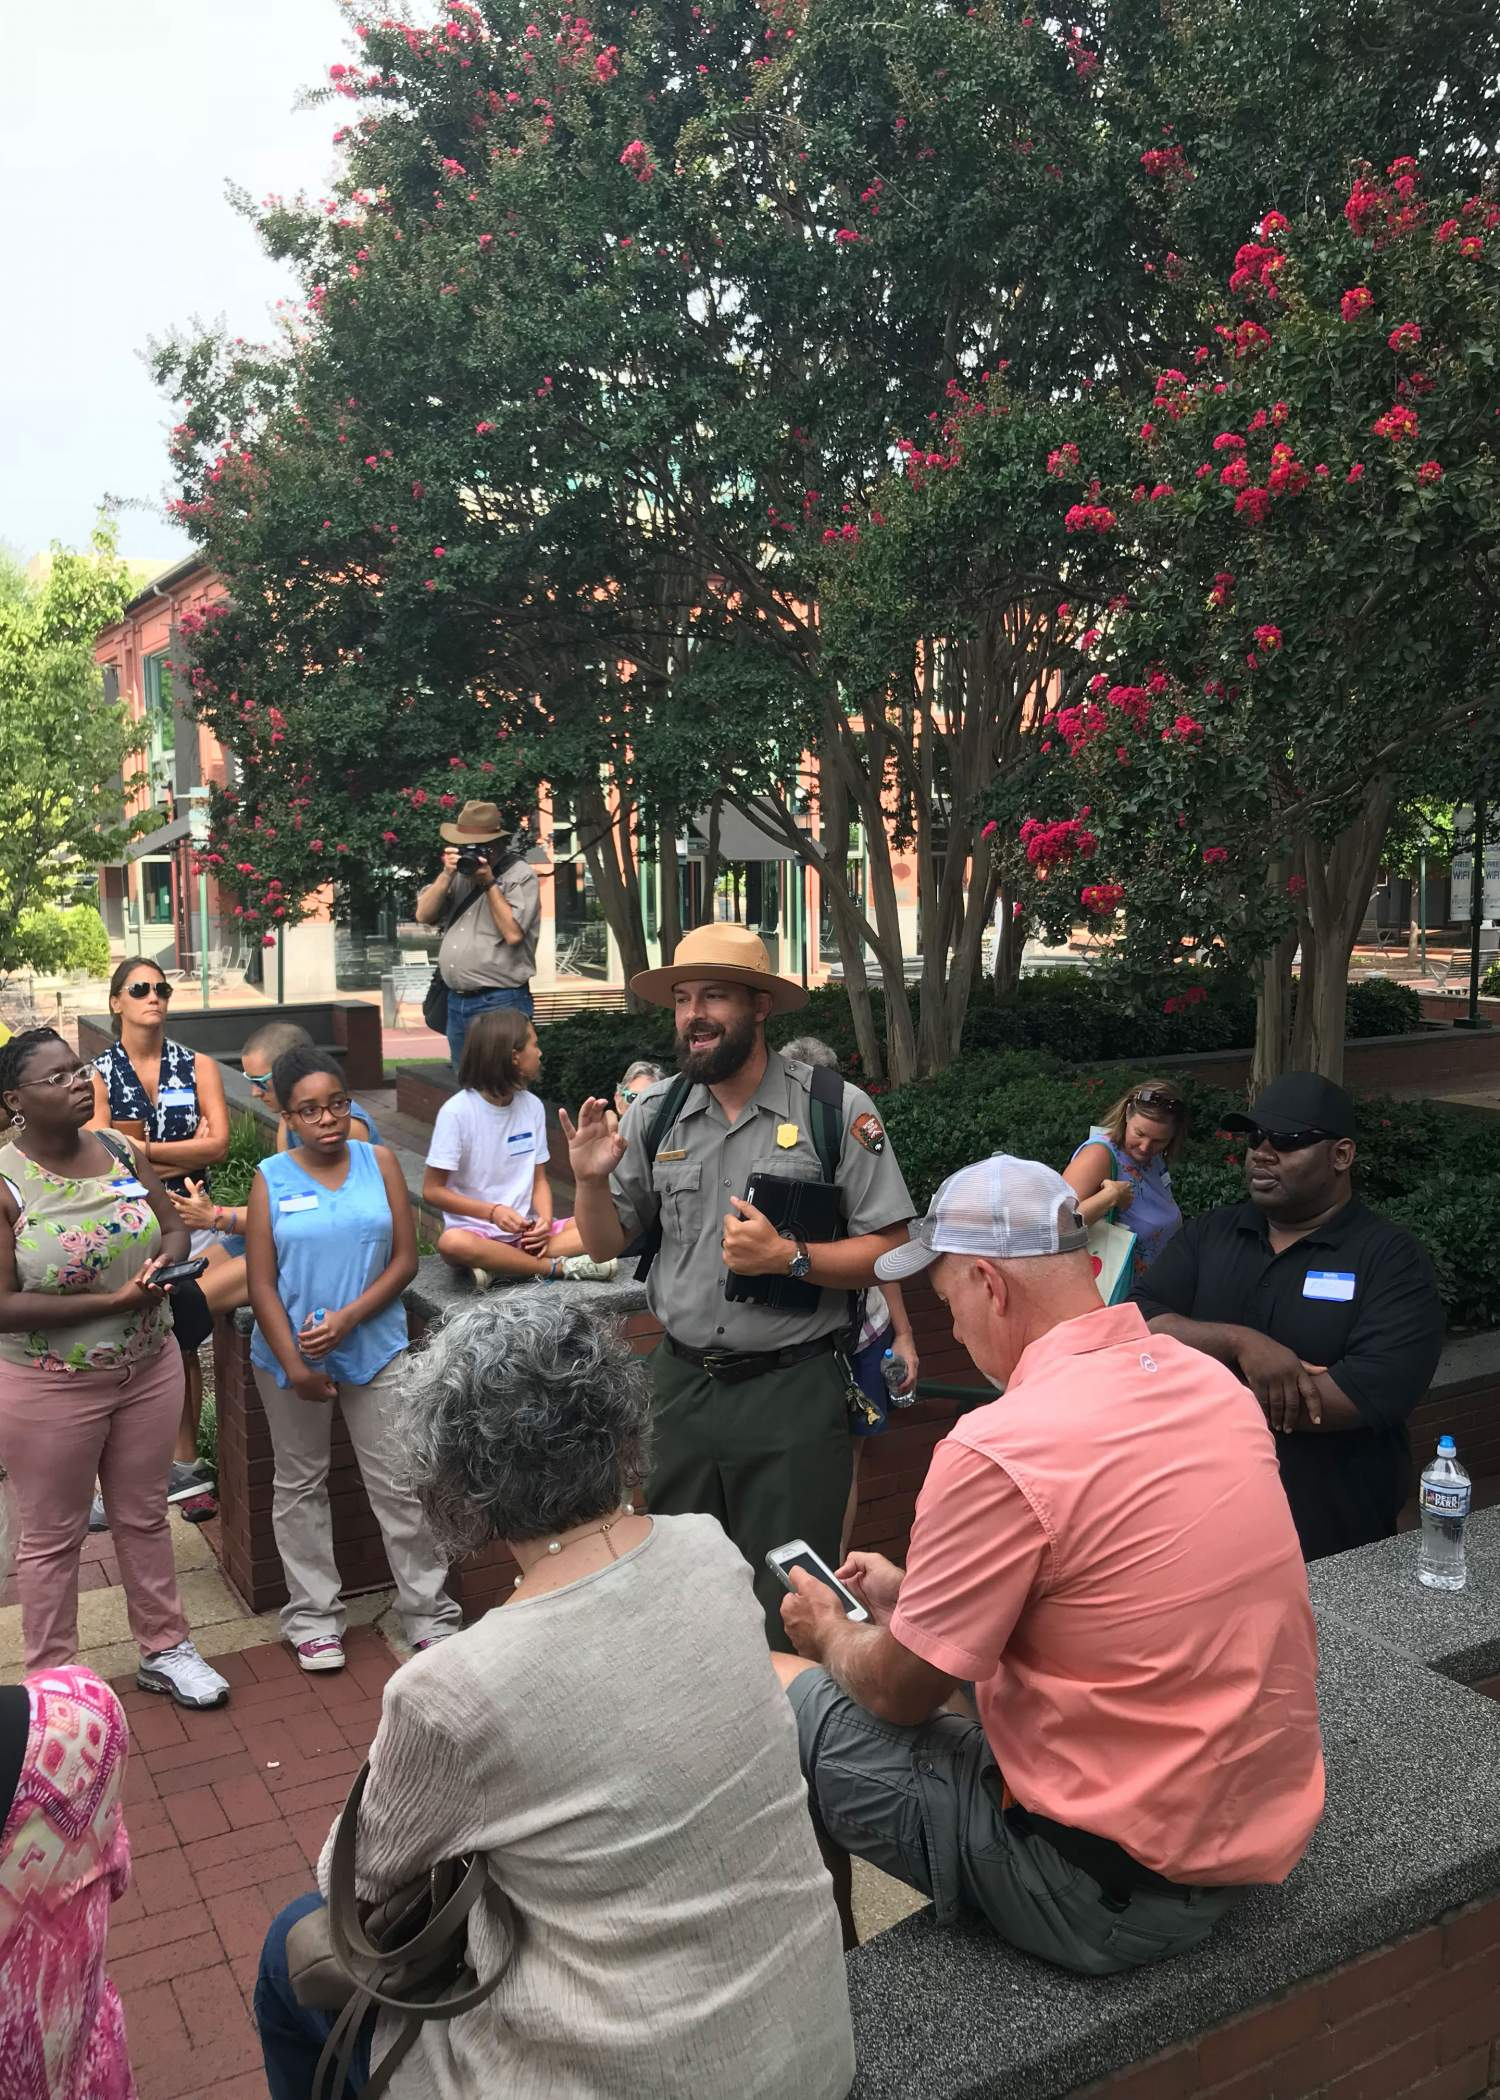 A park ranger providing a guided tour of Moccasin Bend National Park and other historical places at Chattanooga